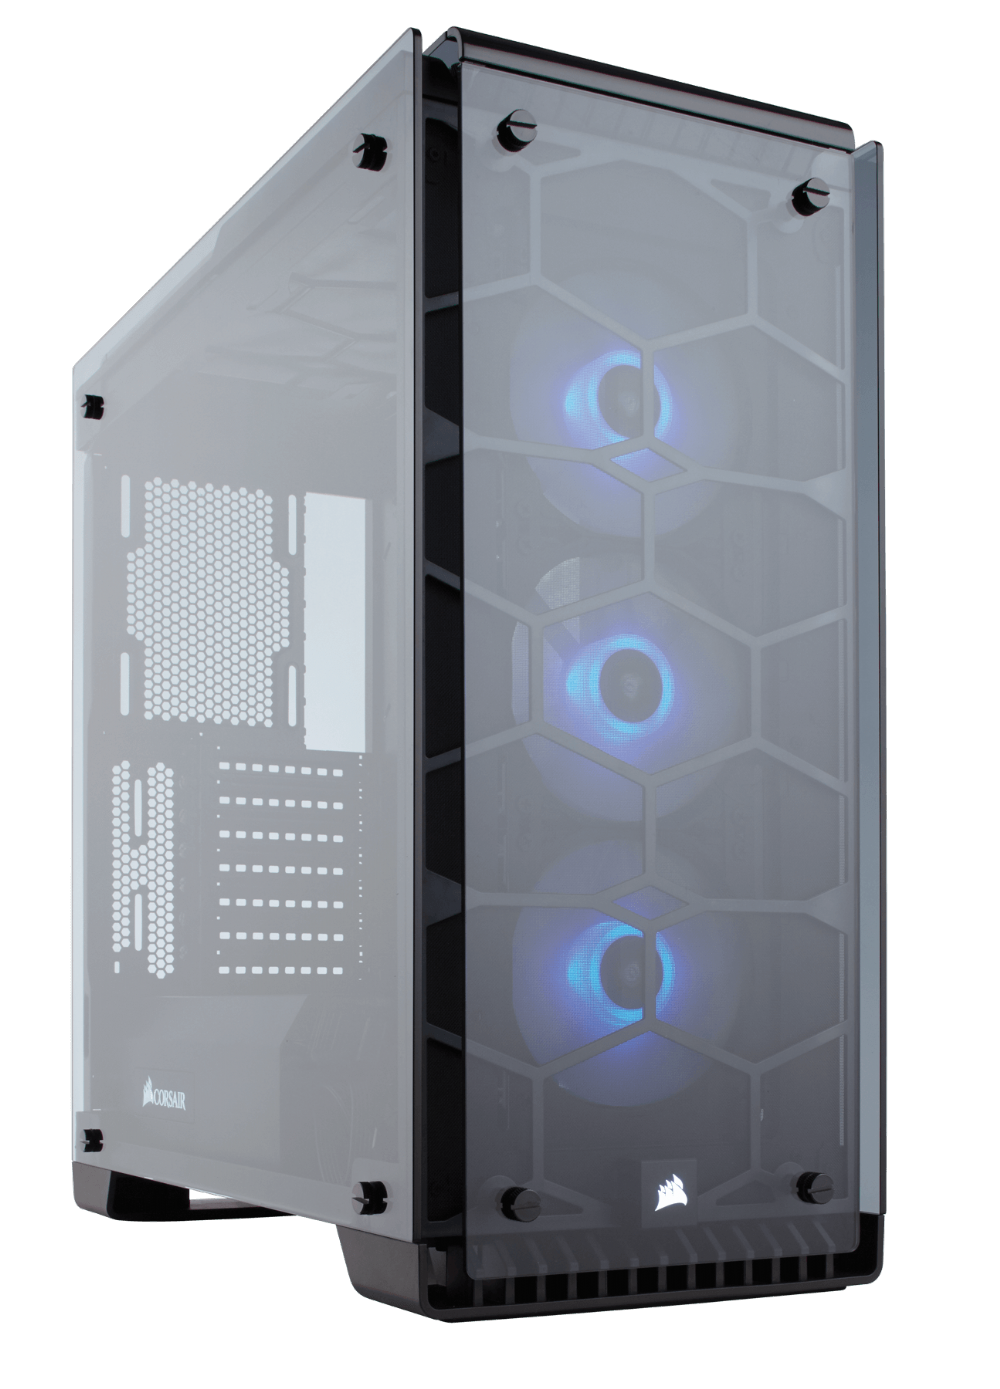 ktc_corsair-crystal-series-570x-rgb-atx-mid-tower-case_full_05522017_095219